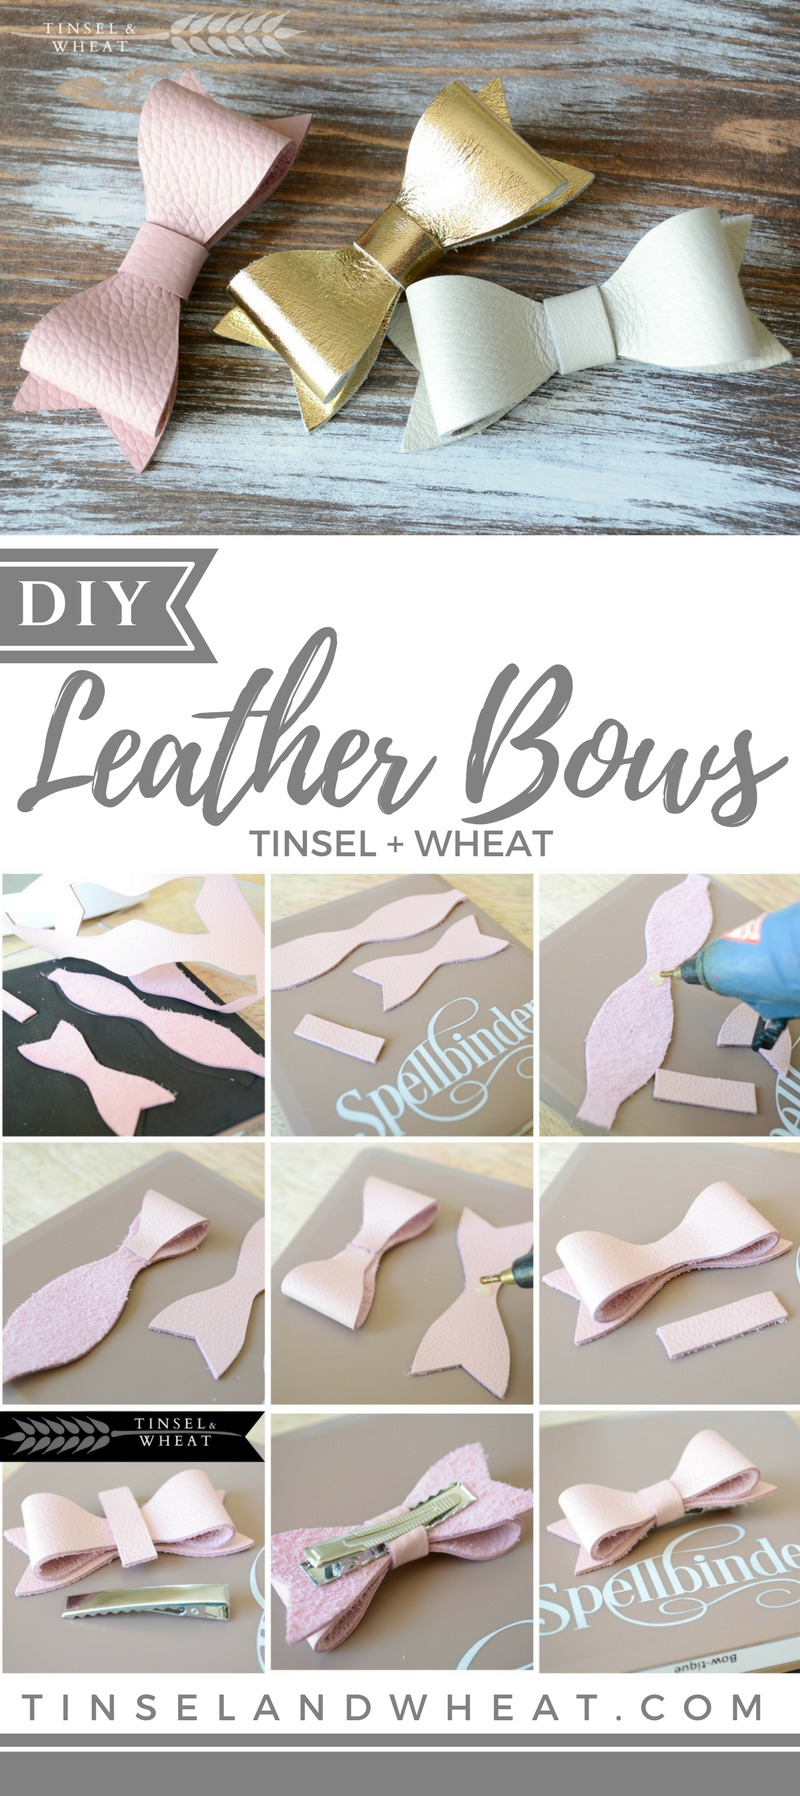 DIY Leather Bows